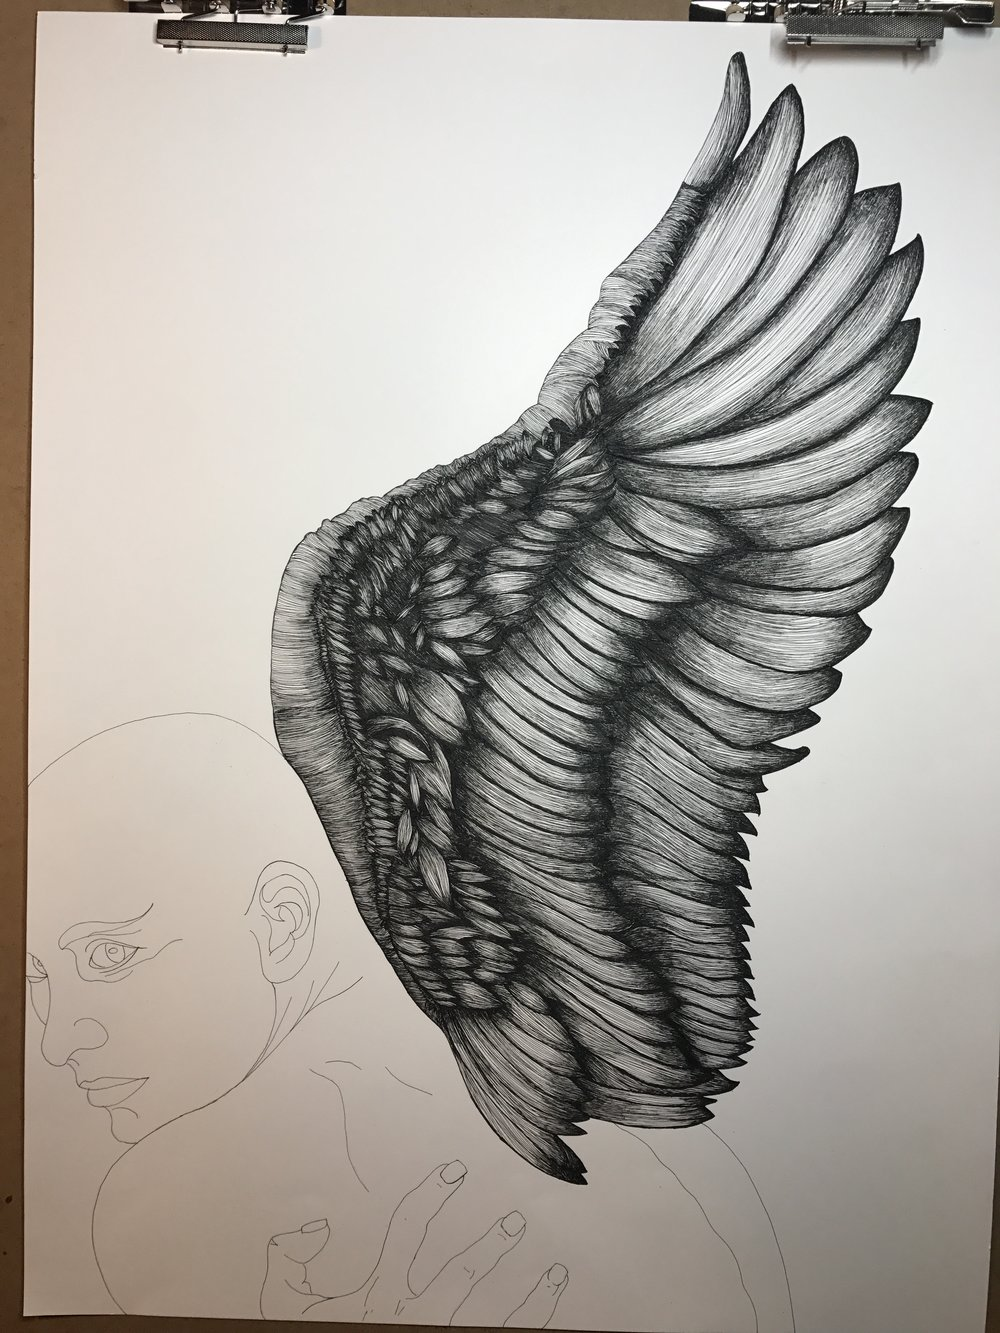 - Finishing the wing feels like a major victory. This is about 50 hours in so far, start to finish.